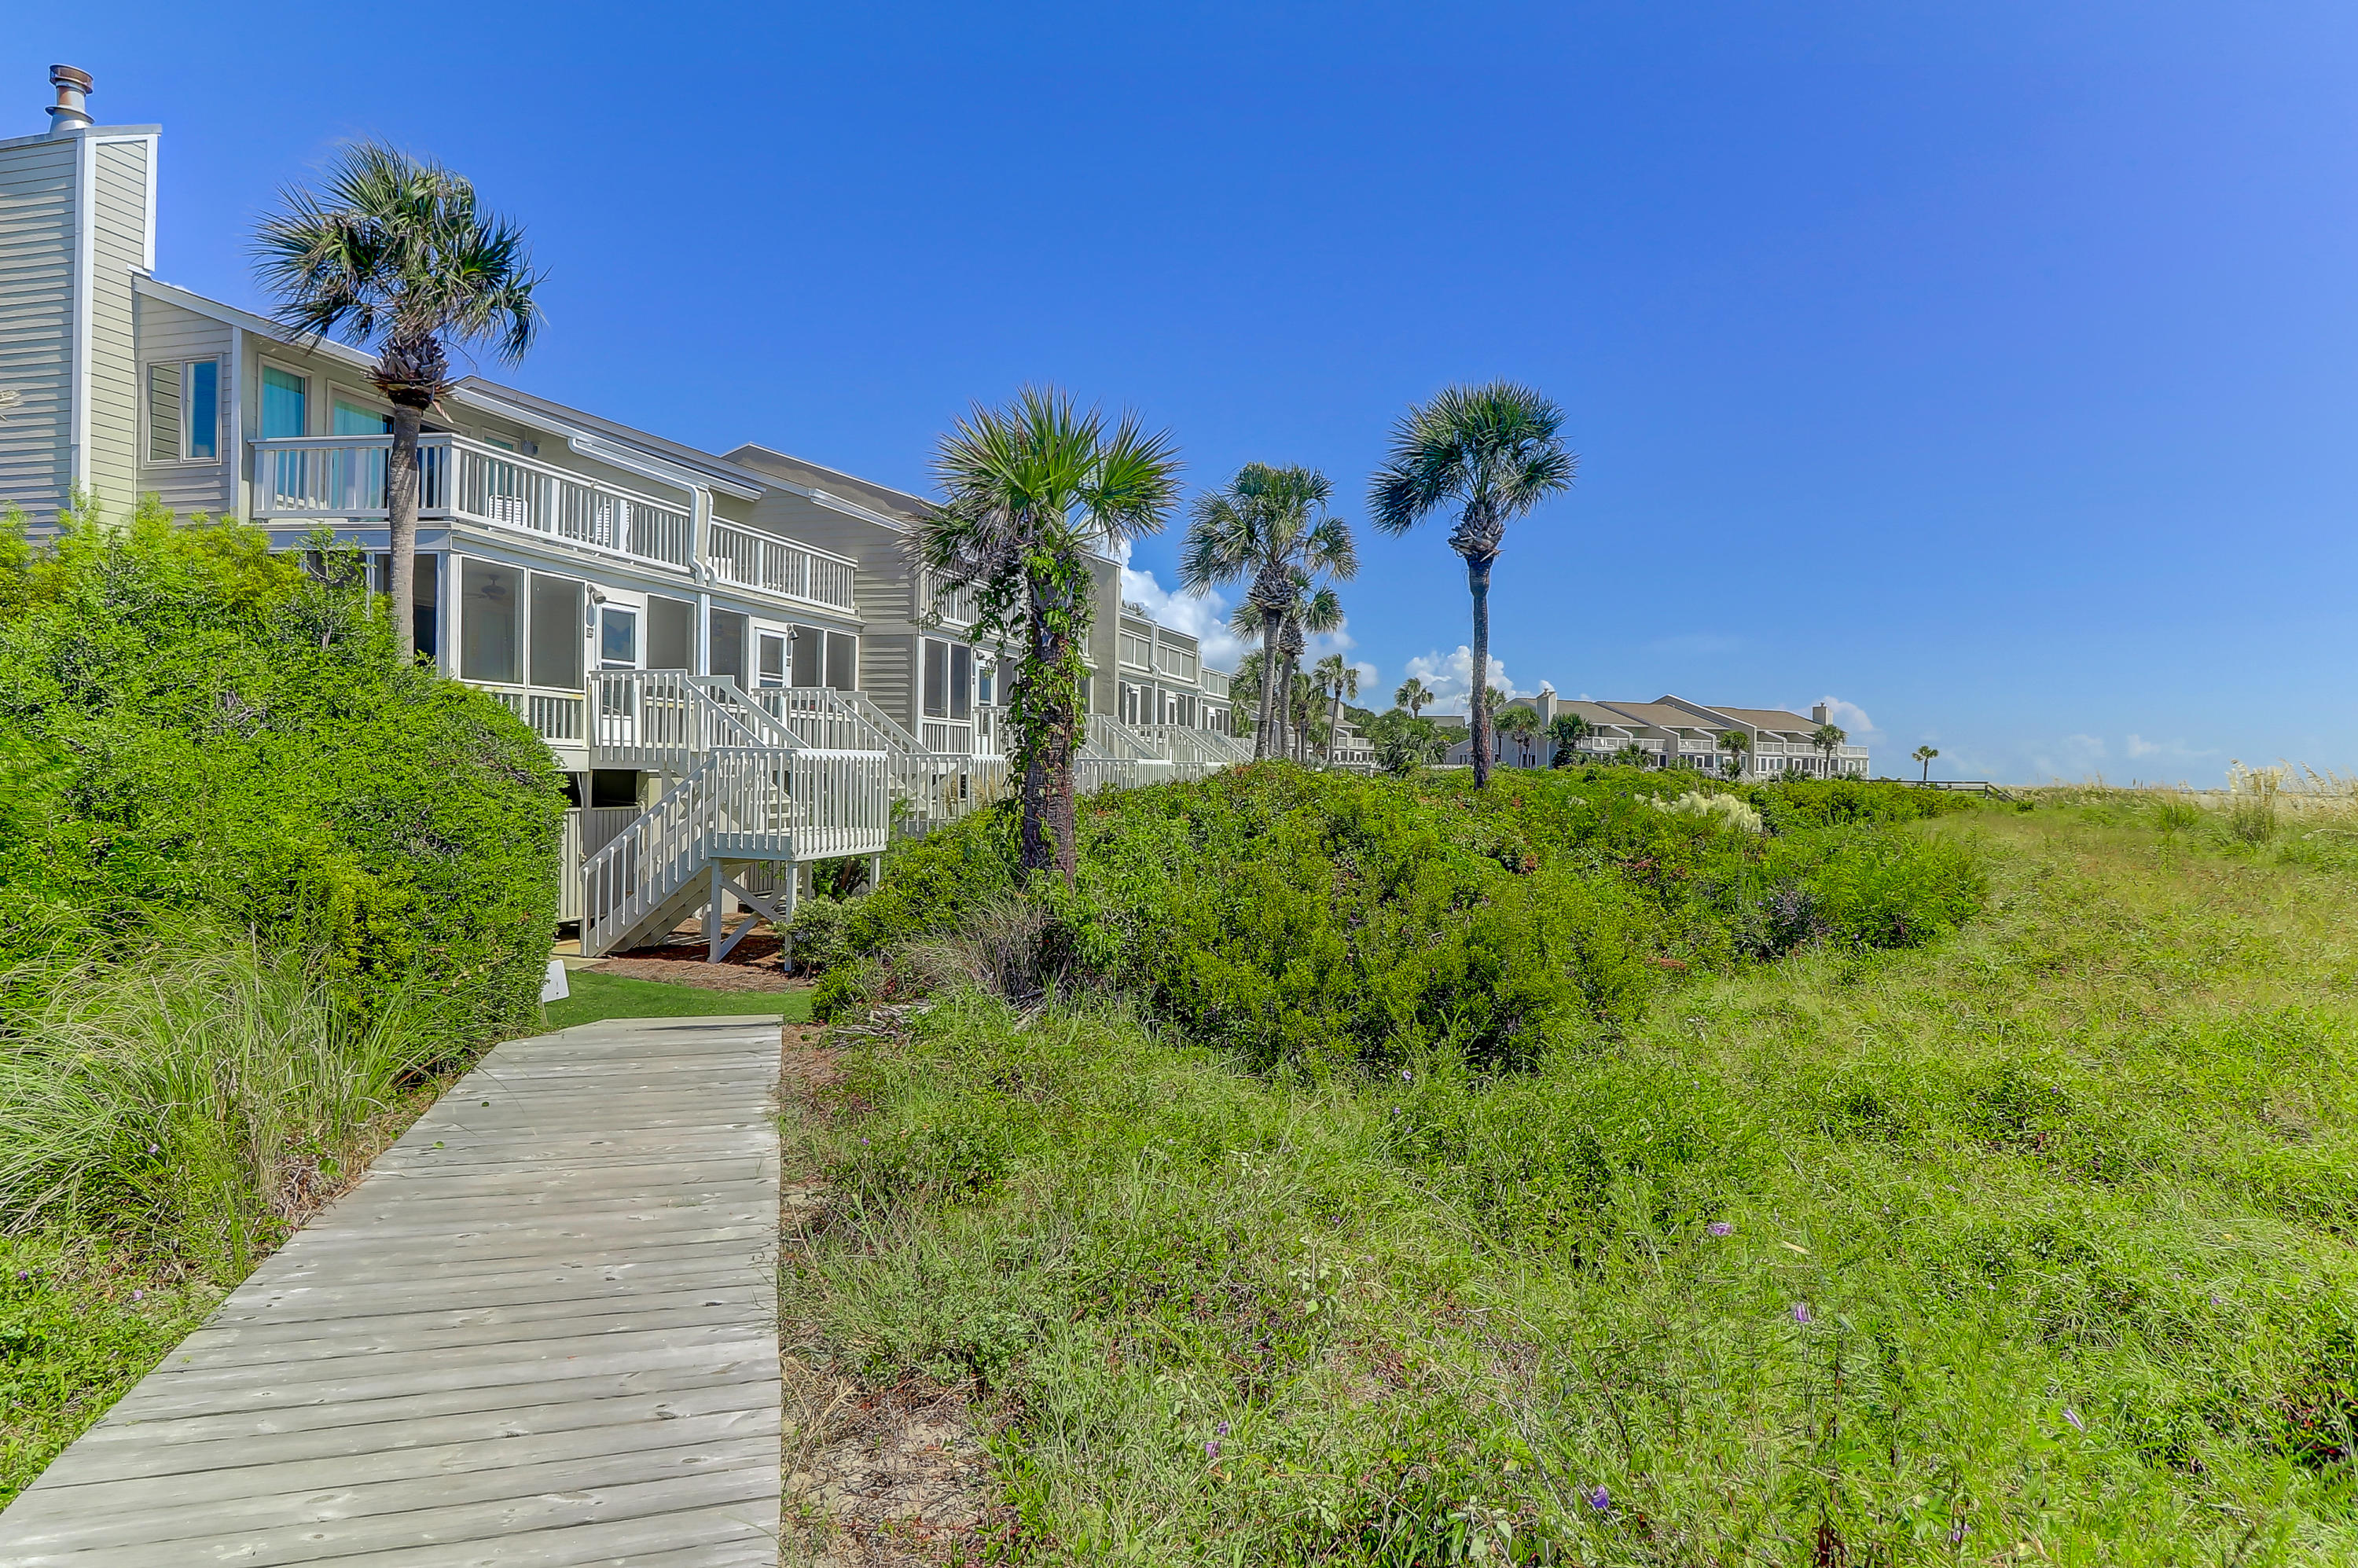 Beach Club Villas Homes For Sale - 33 Beach Club Villas, Isle of Palms, SC - 17